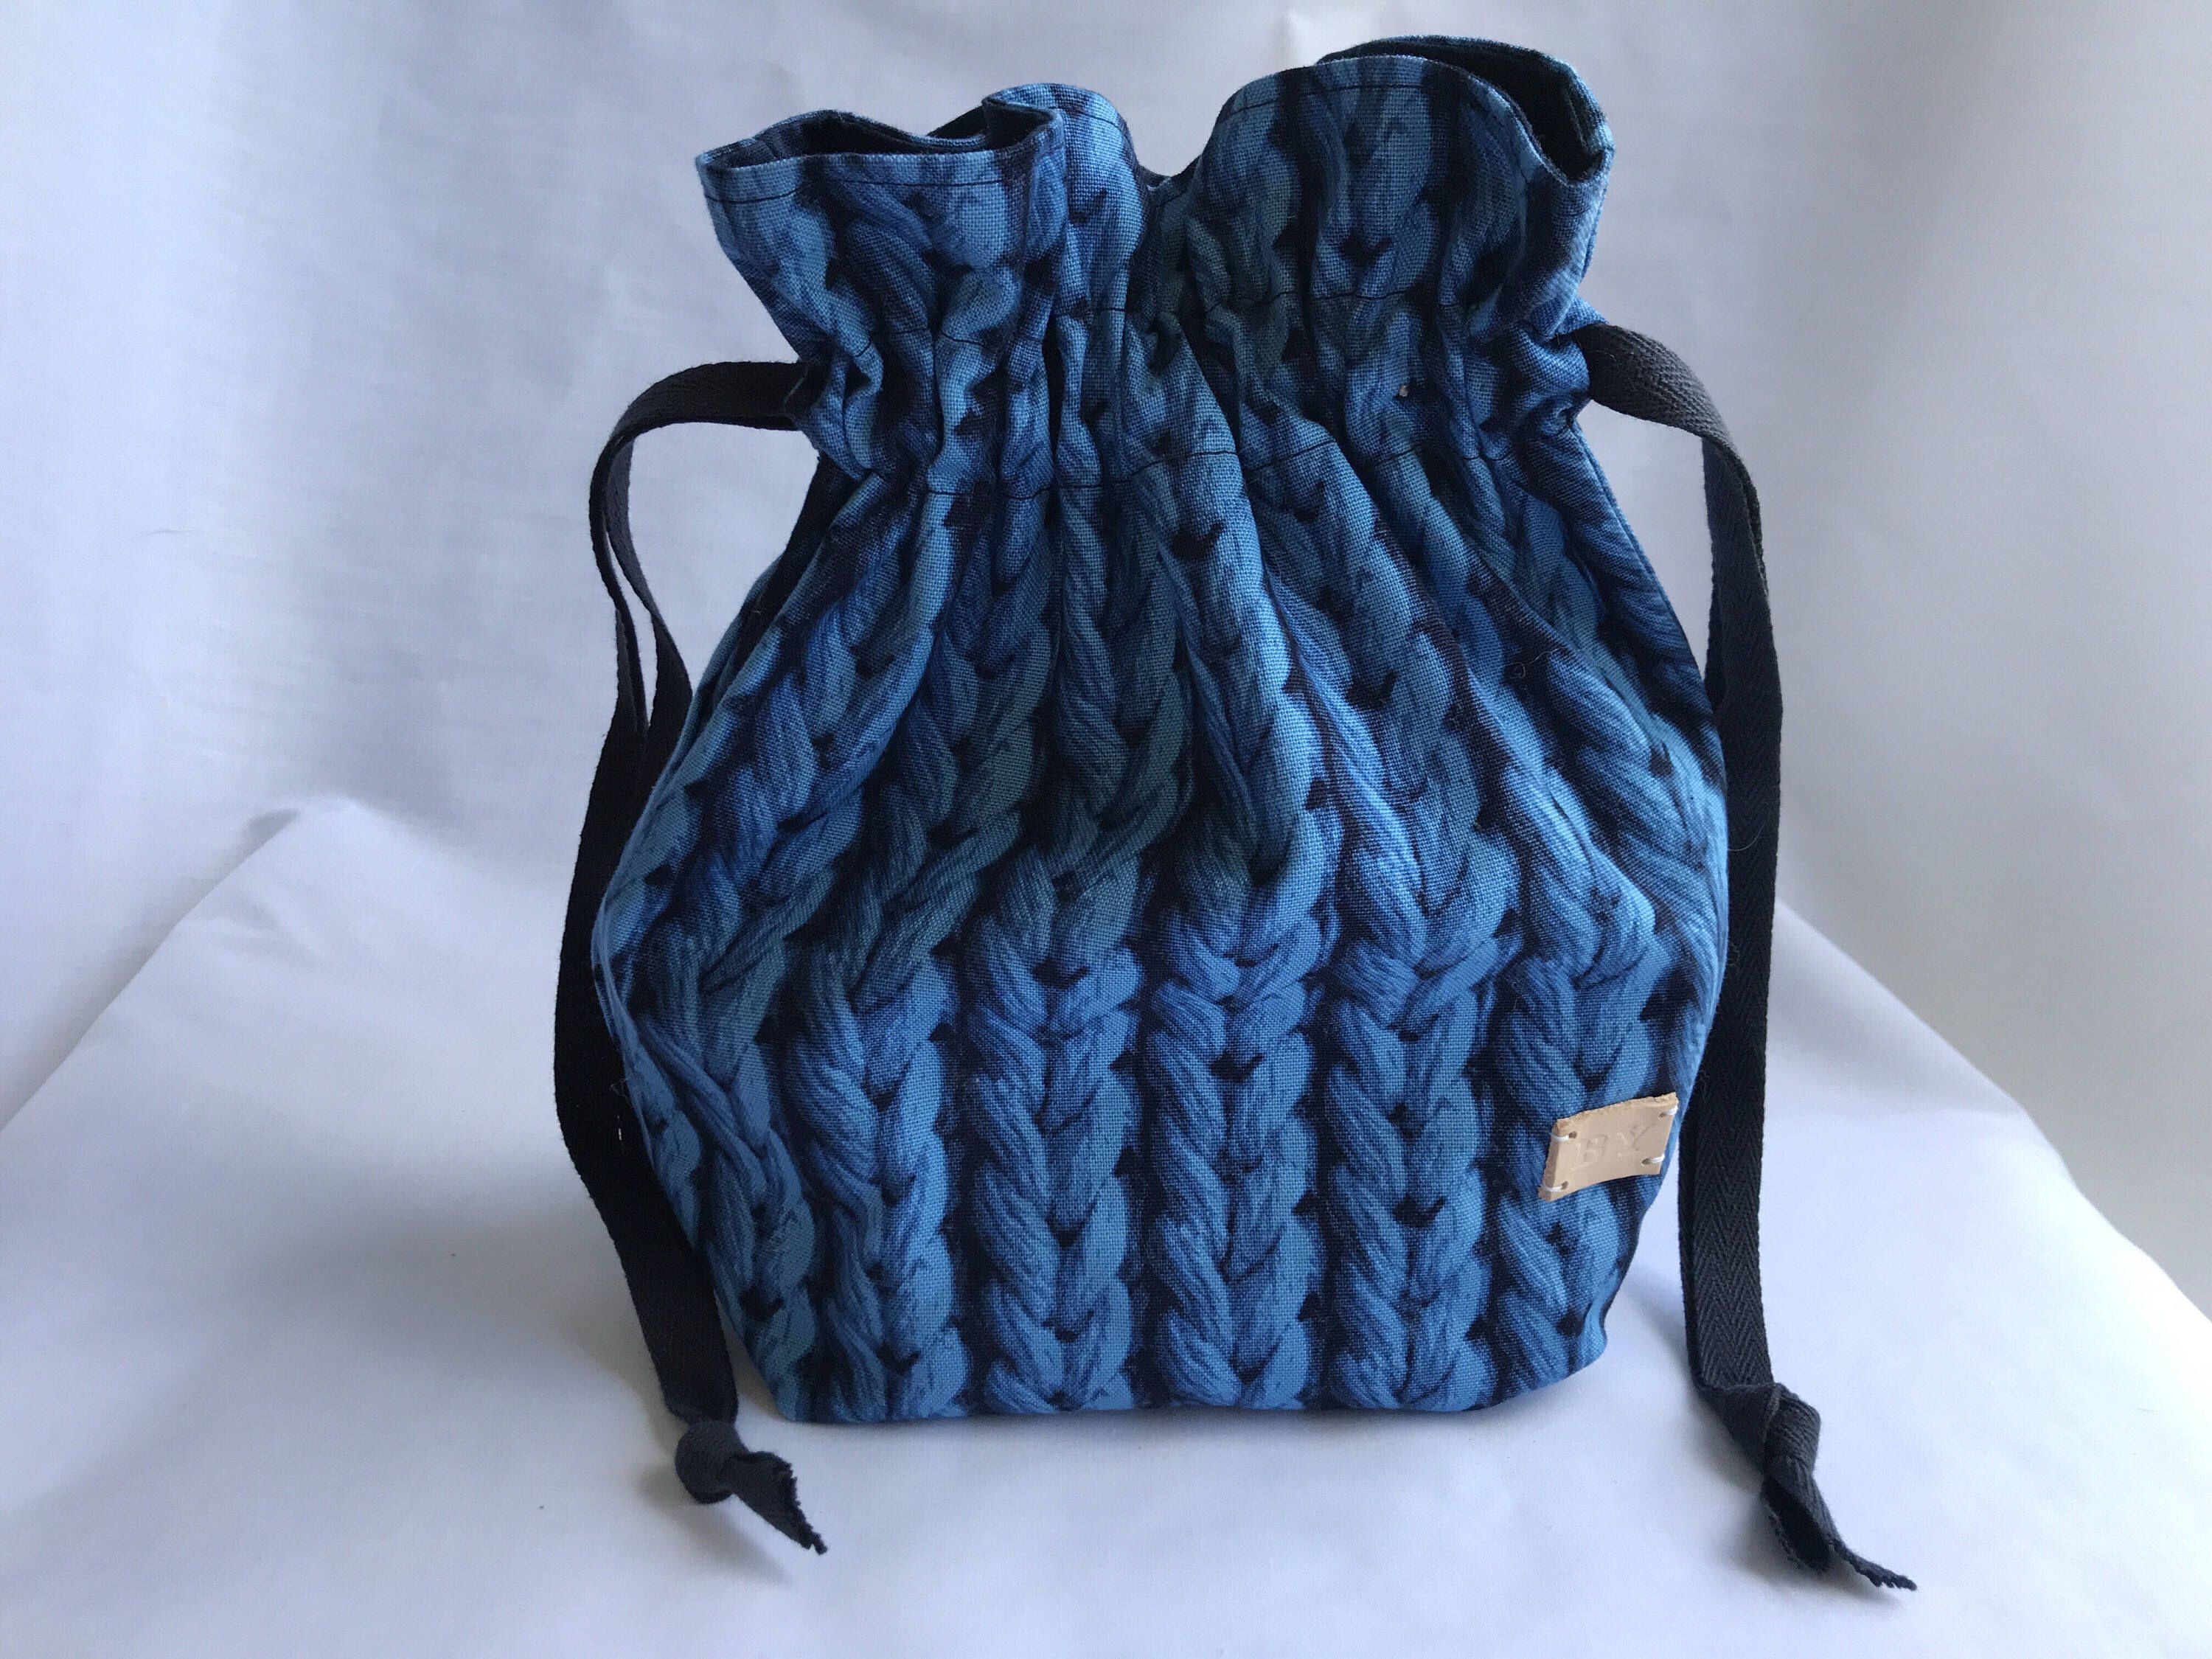 Knitting /& Crochet Project Bag small size